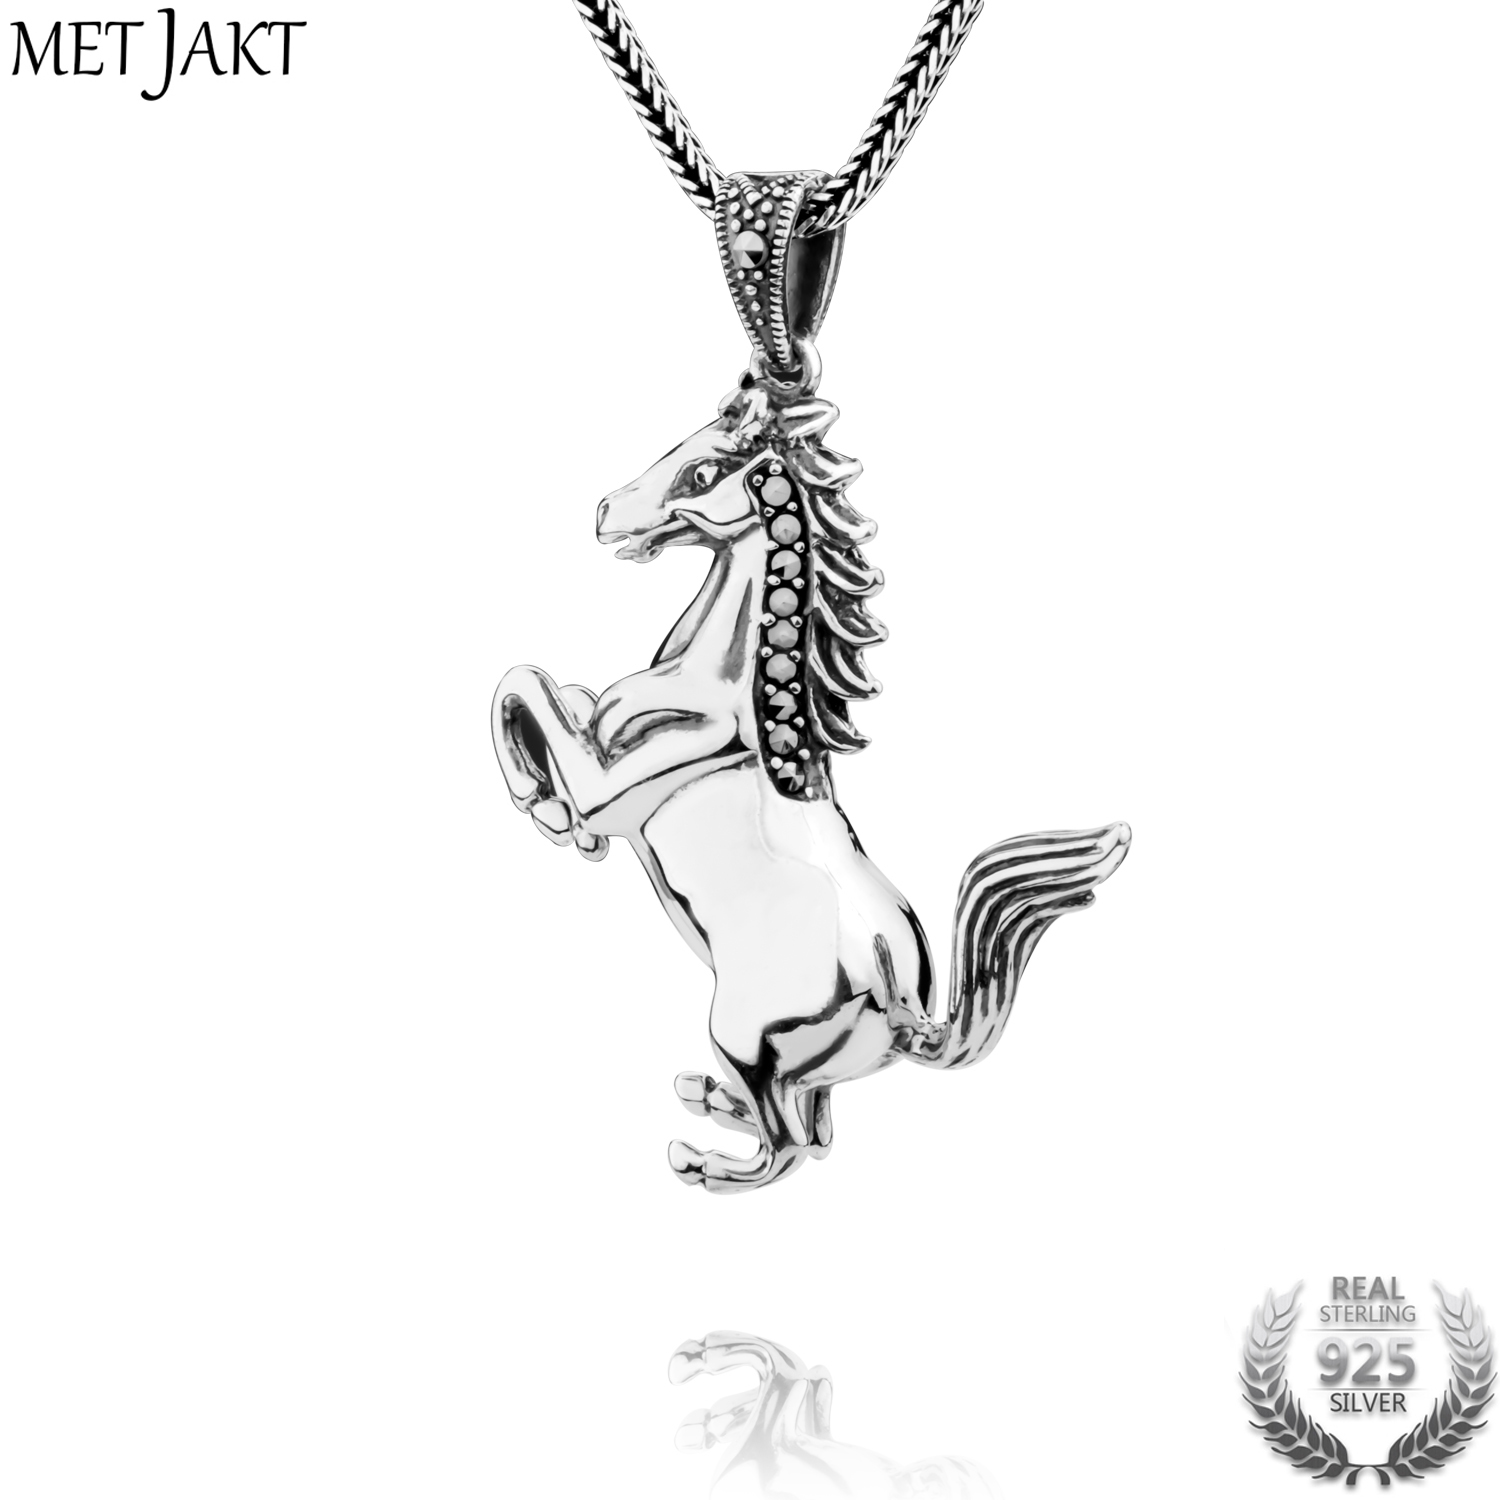 MetJakt Vintage 925 Sterling Silver Horse Pendant Necklace 925 Silver Snake Chain for Unisex Punk Jewelry men 925 sterling silver necklace with 4 mm classic round snake chain necklace the punk style silver ornament gift for boyfriend